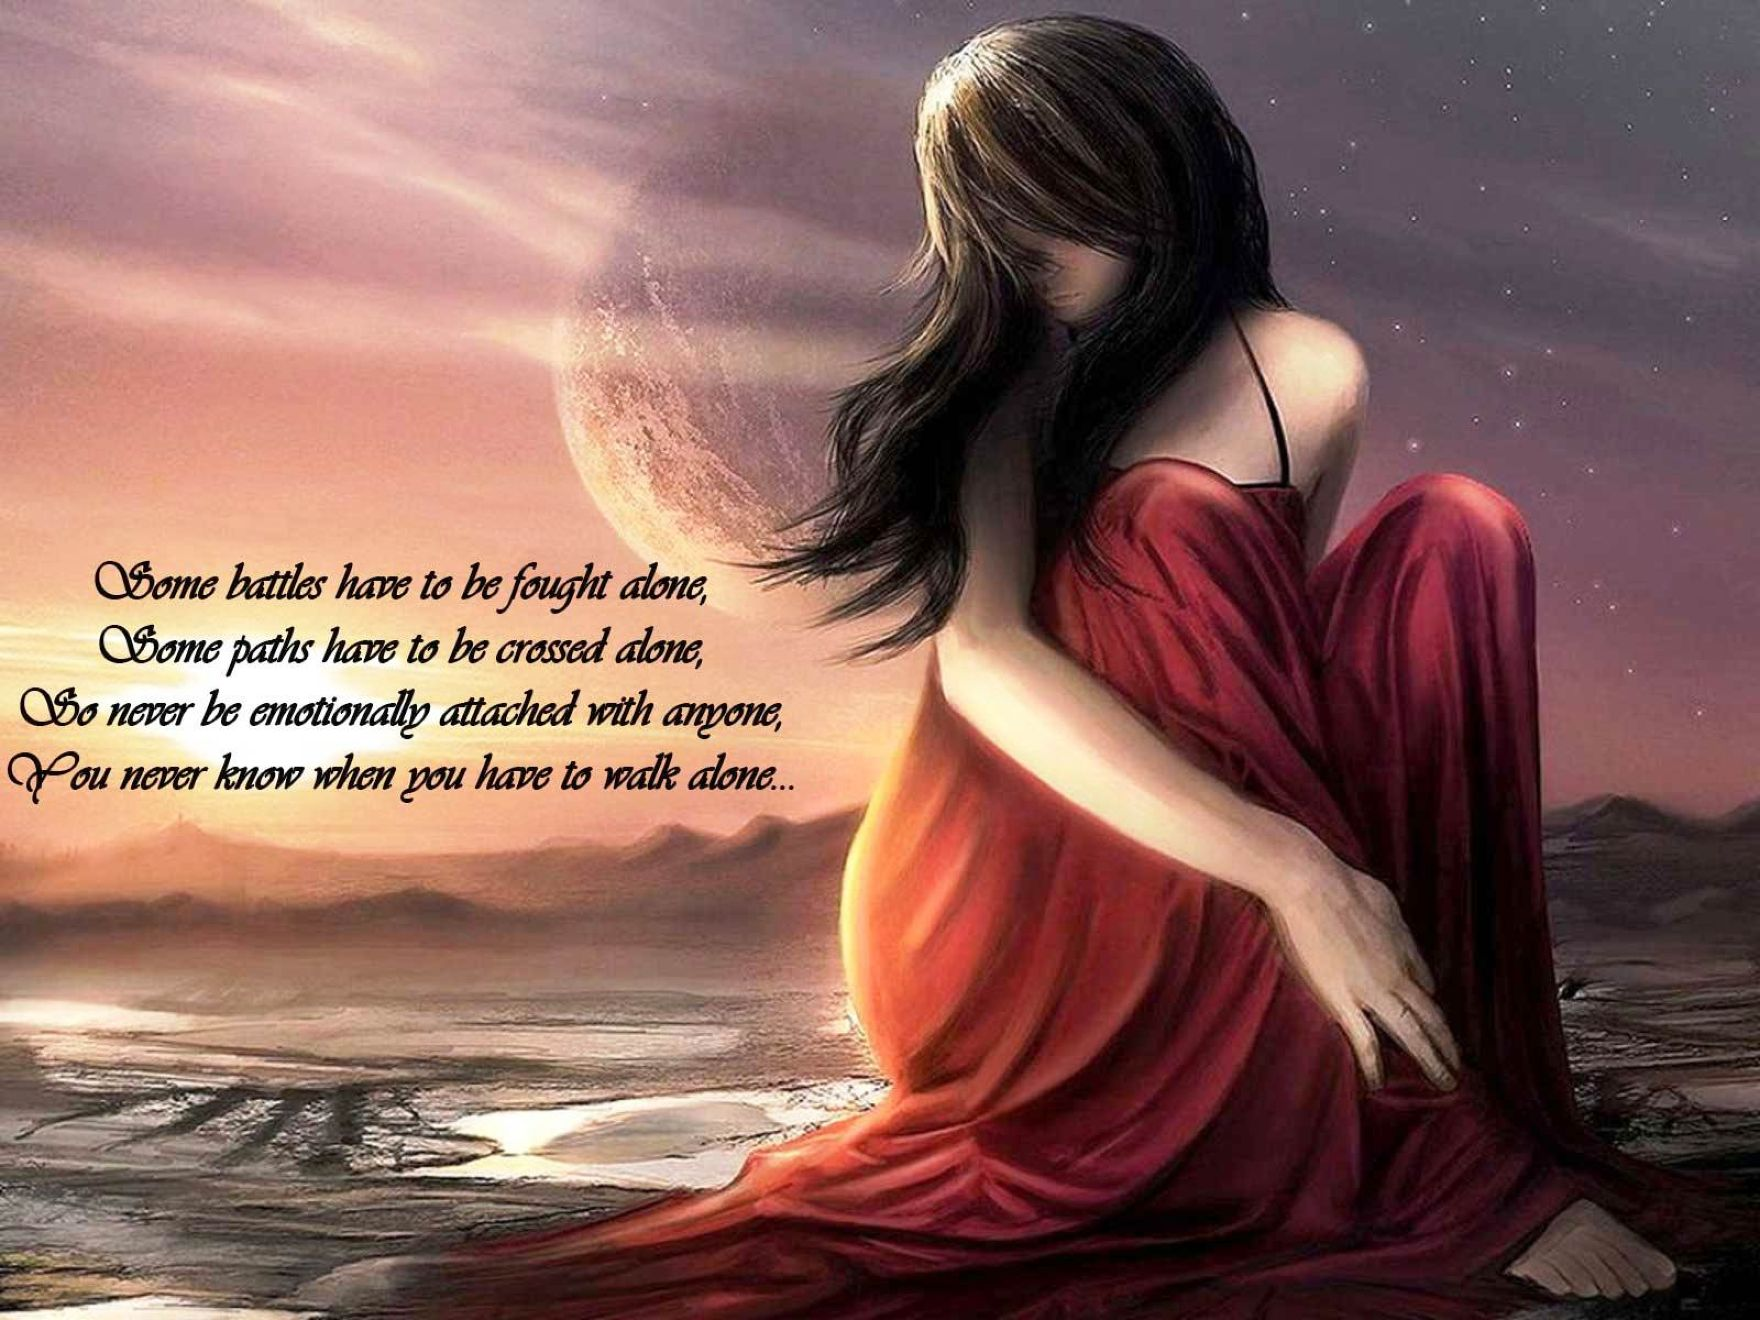 Download Free Hd Beautiful Girl Quotes Art Wallpaper, - Beautiful Girl With Quotes - HD Wallpaper